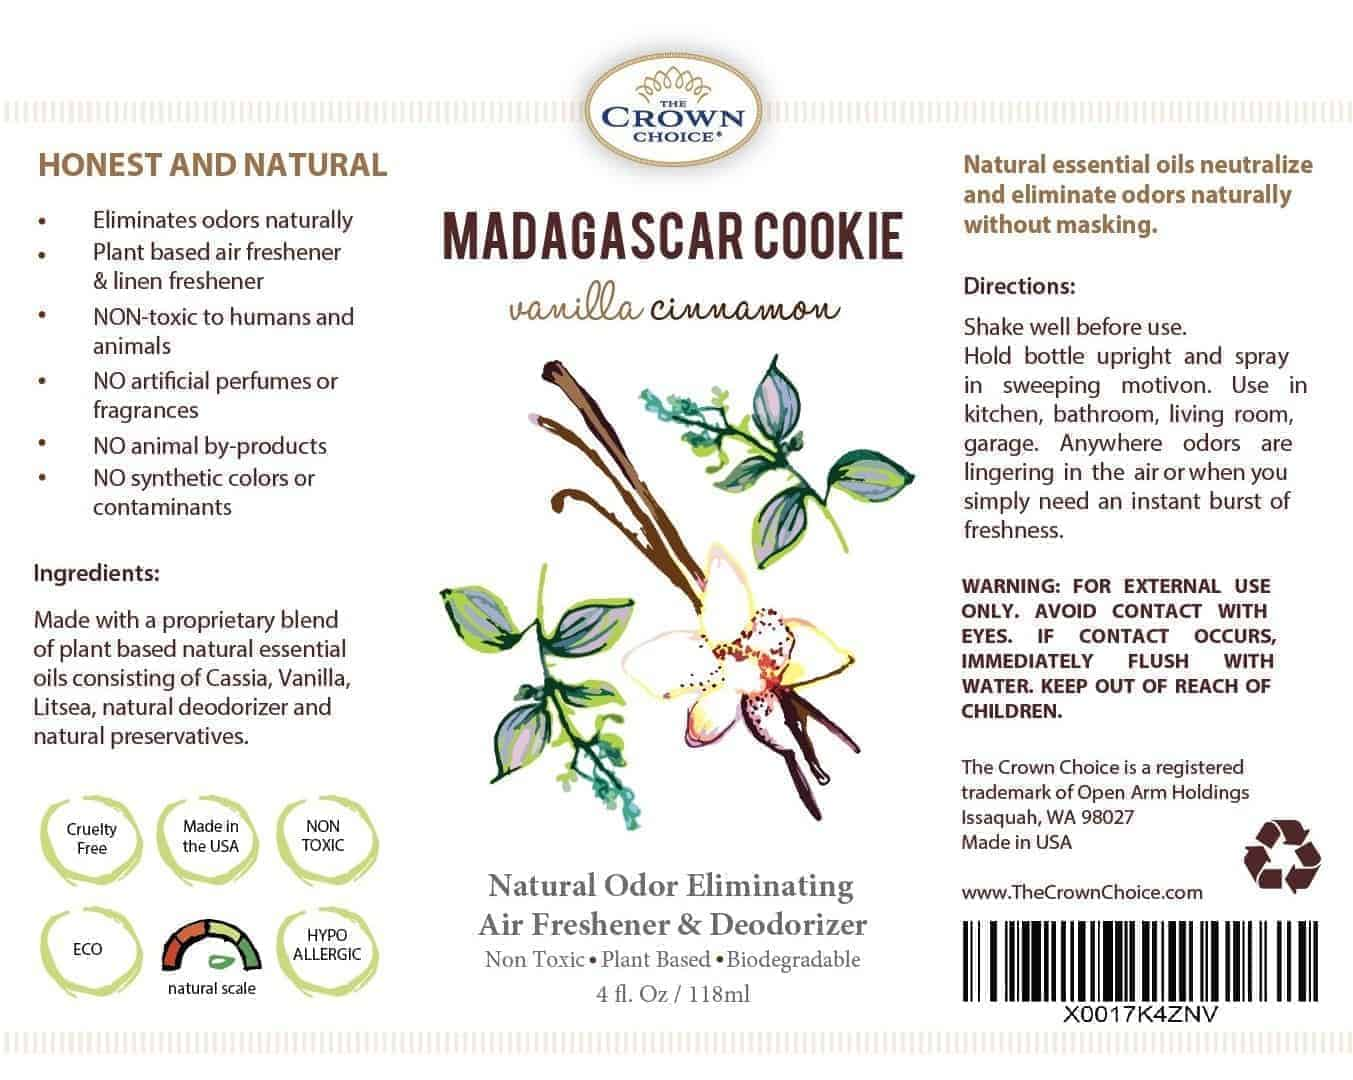 Natural Bathroom Freshener that eliminates odors with natural ingredients - MADAGASCAR COOKIE 5